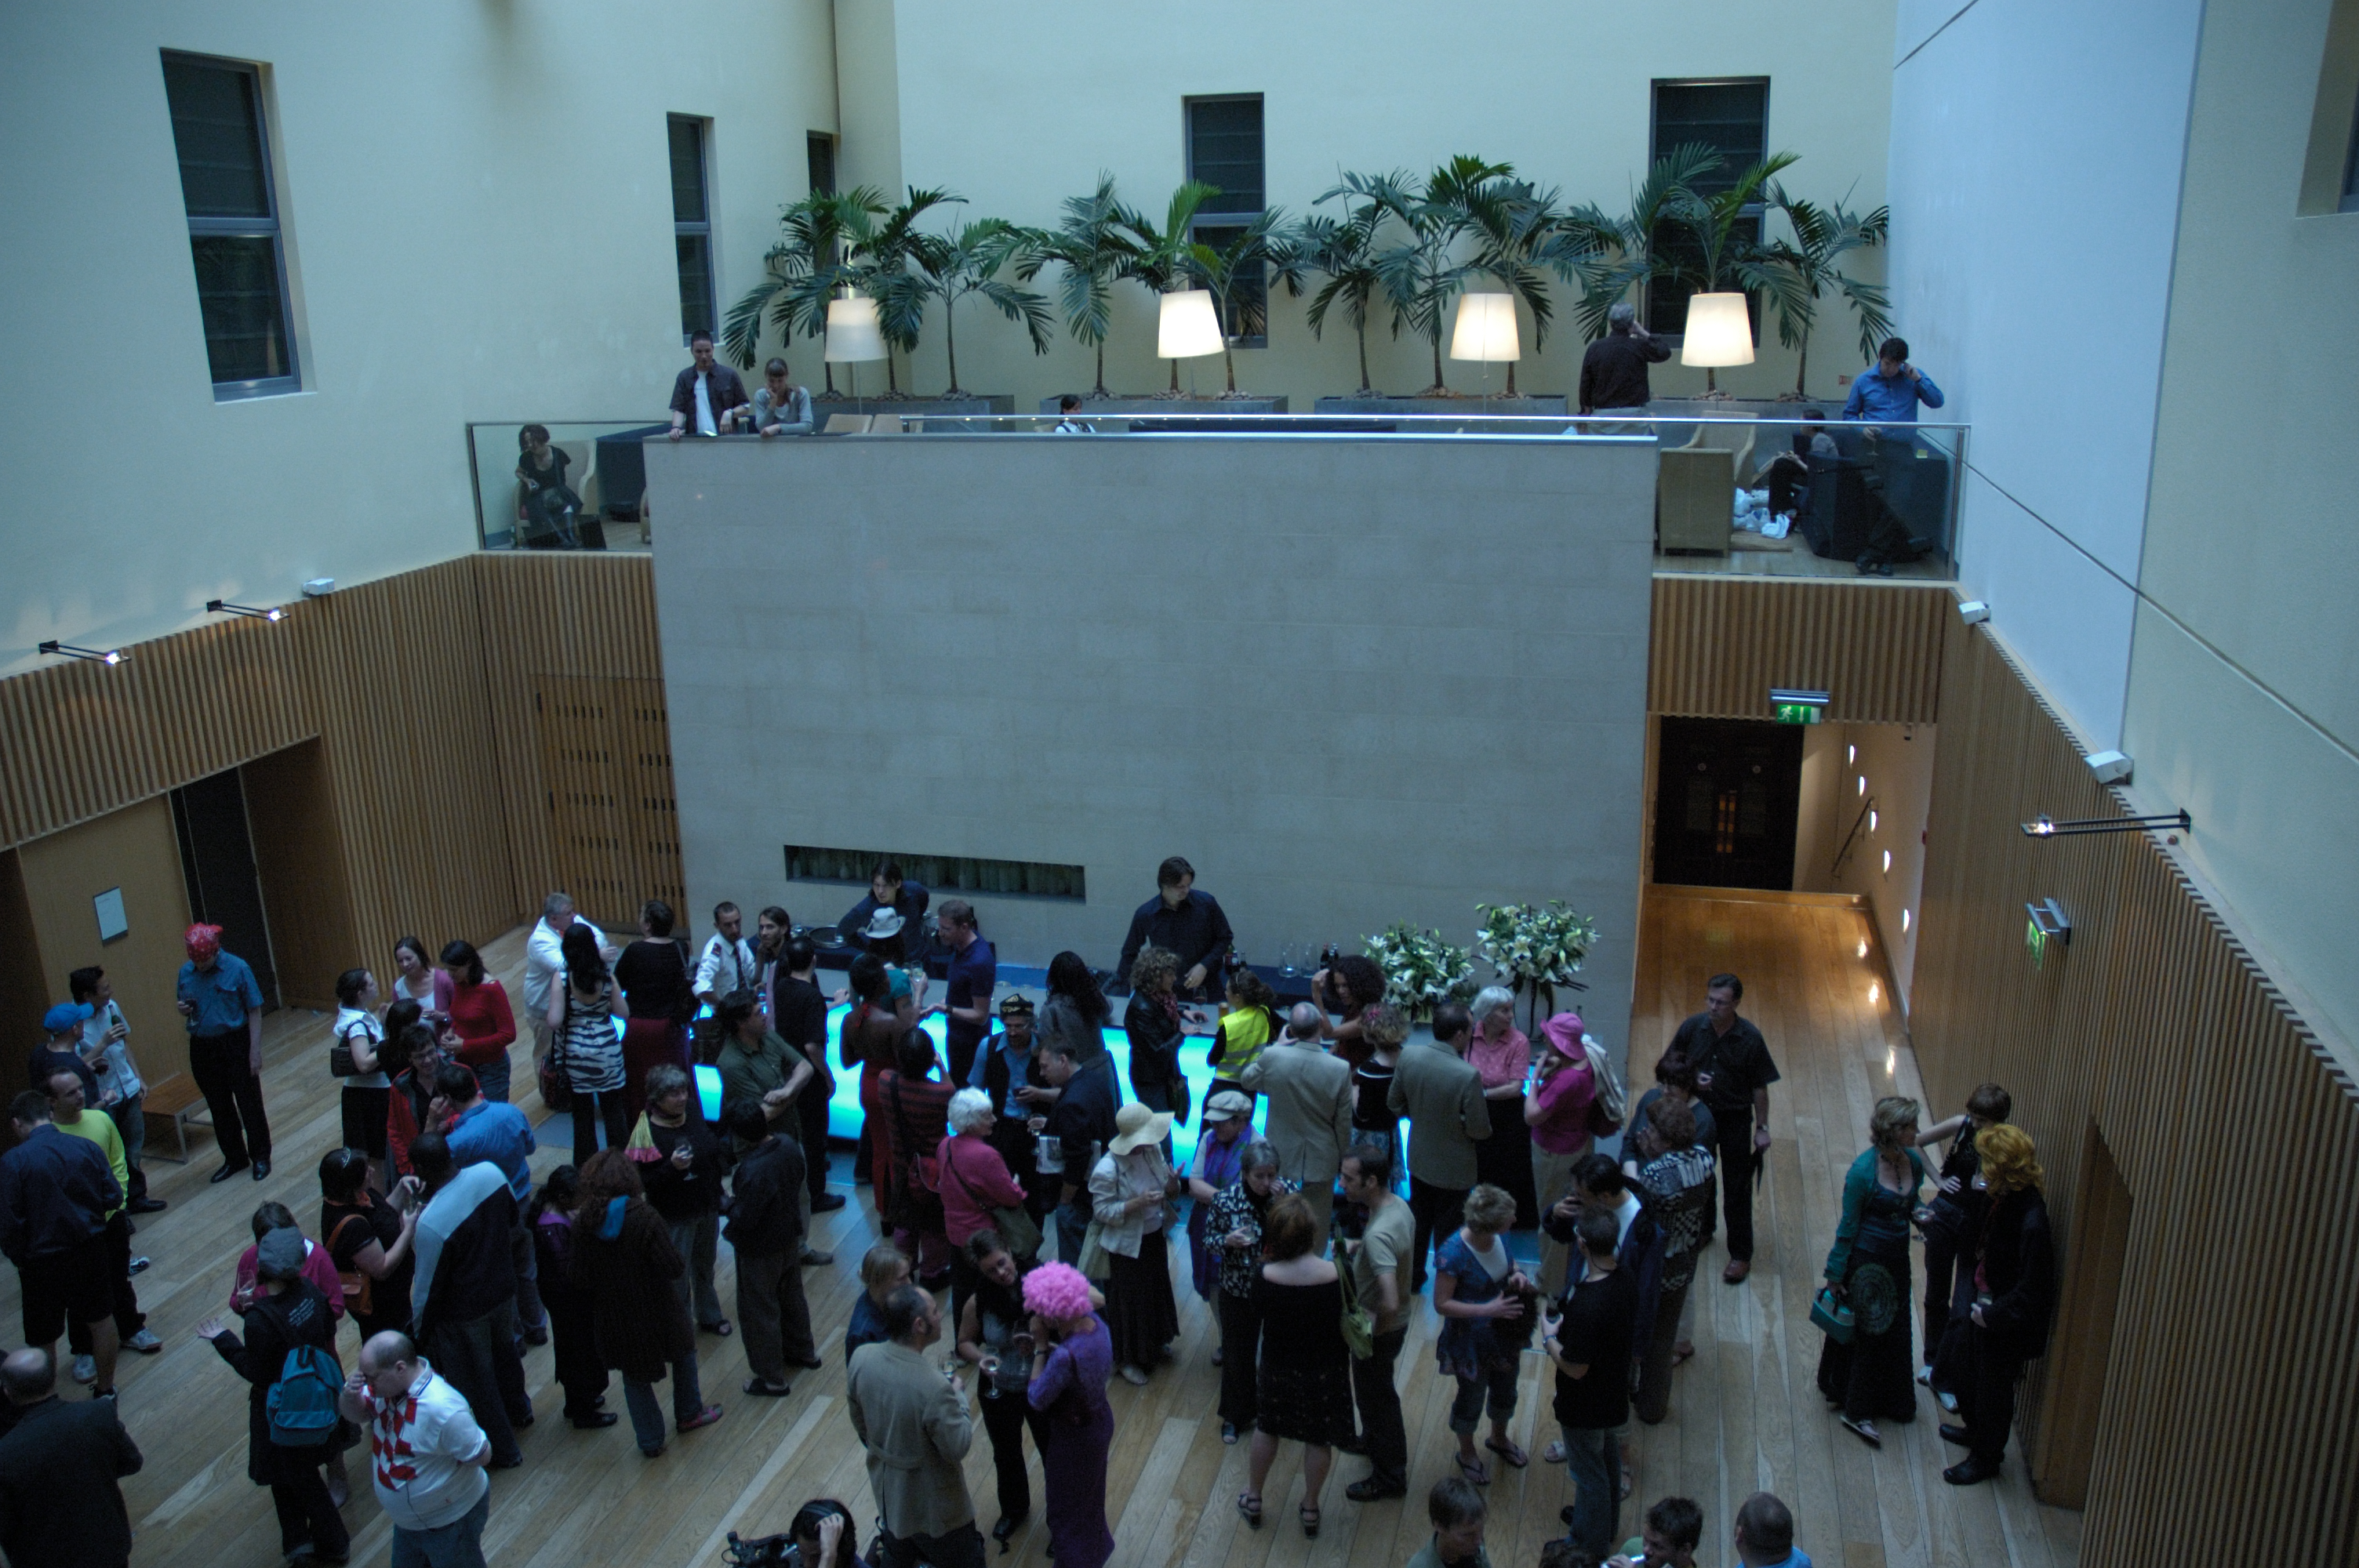 From above, a large group of people on the party floor, drinking near a blue lit bar.